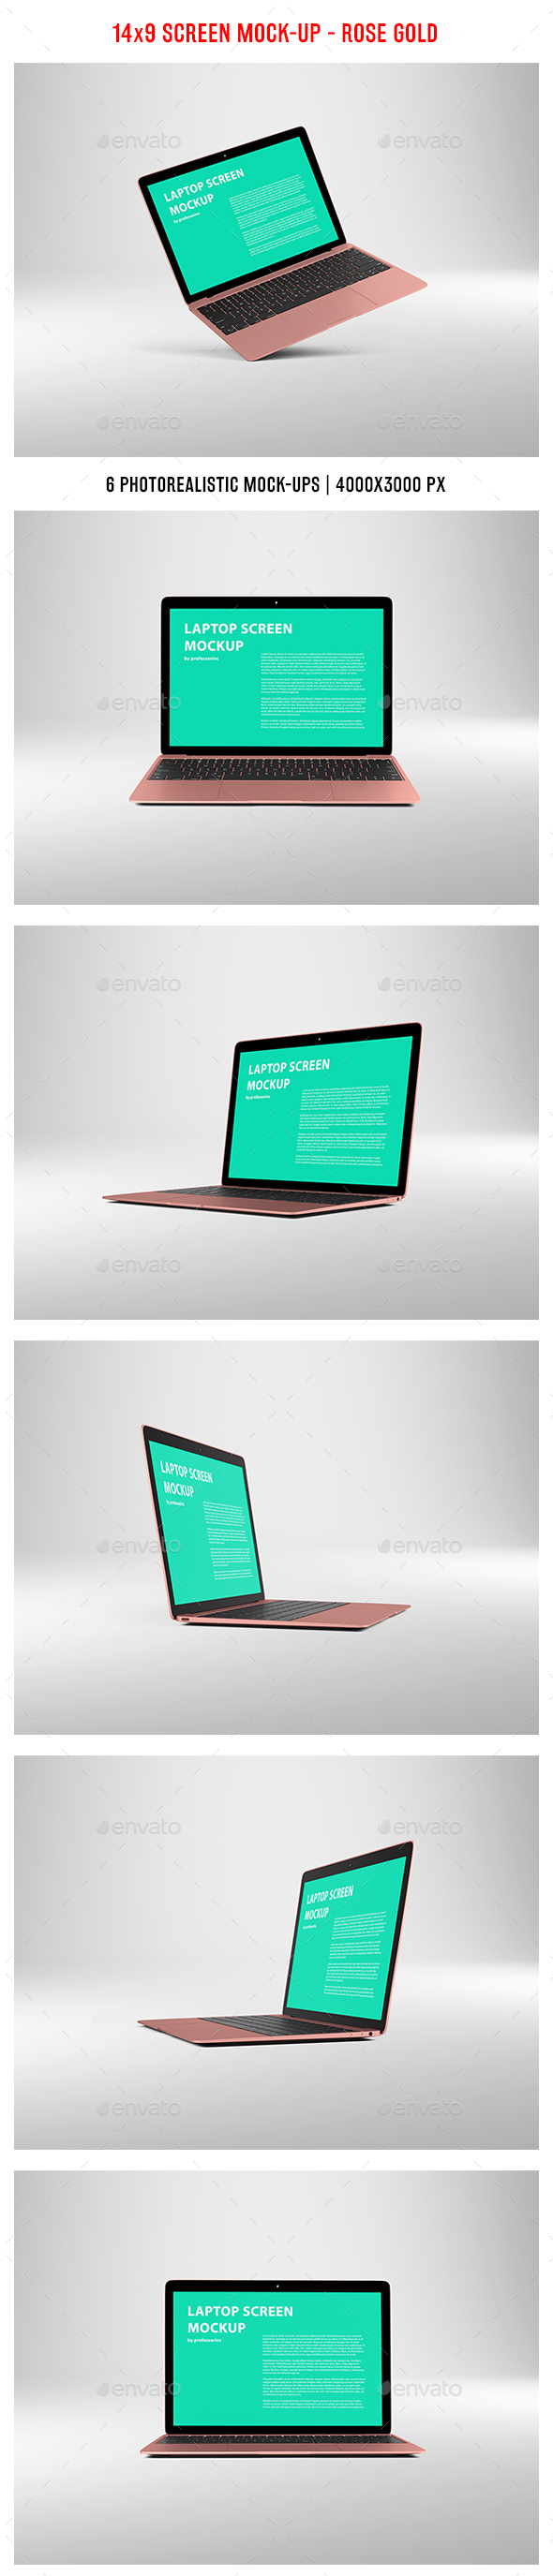 14x9 Screen Mock-Up - Rose Gold - Laptop Displays